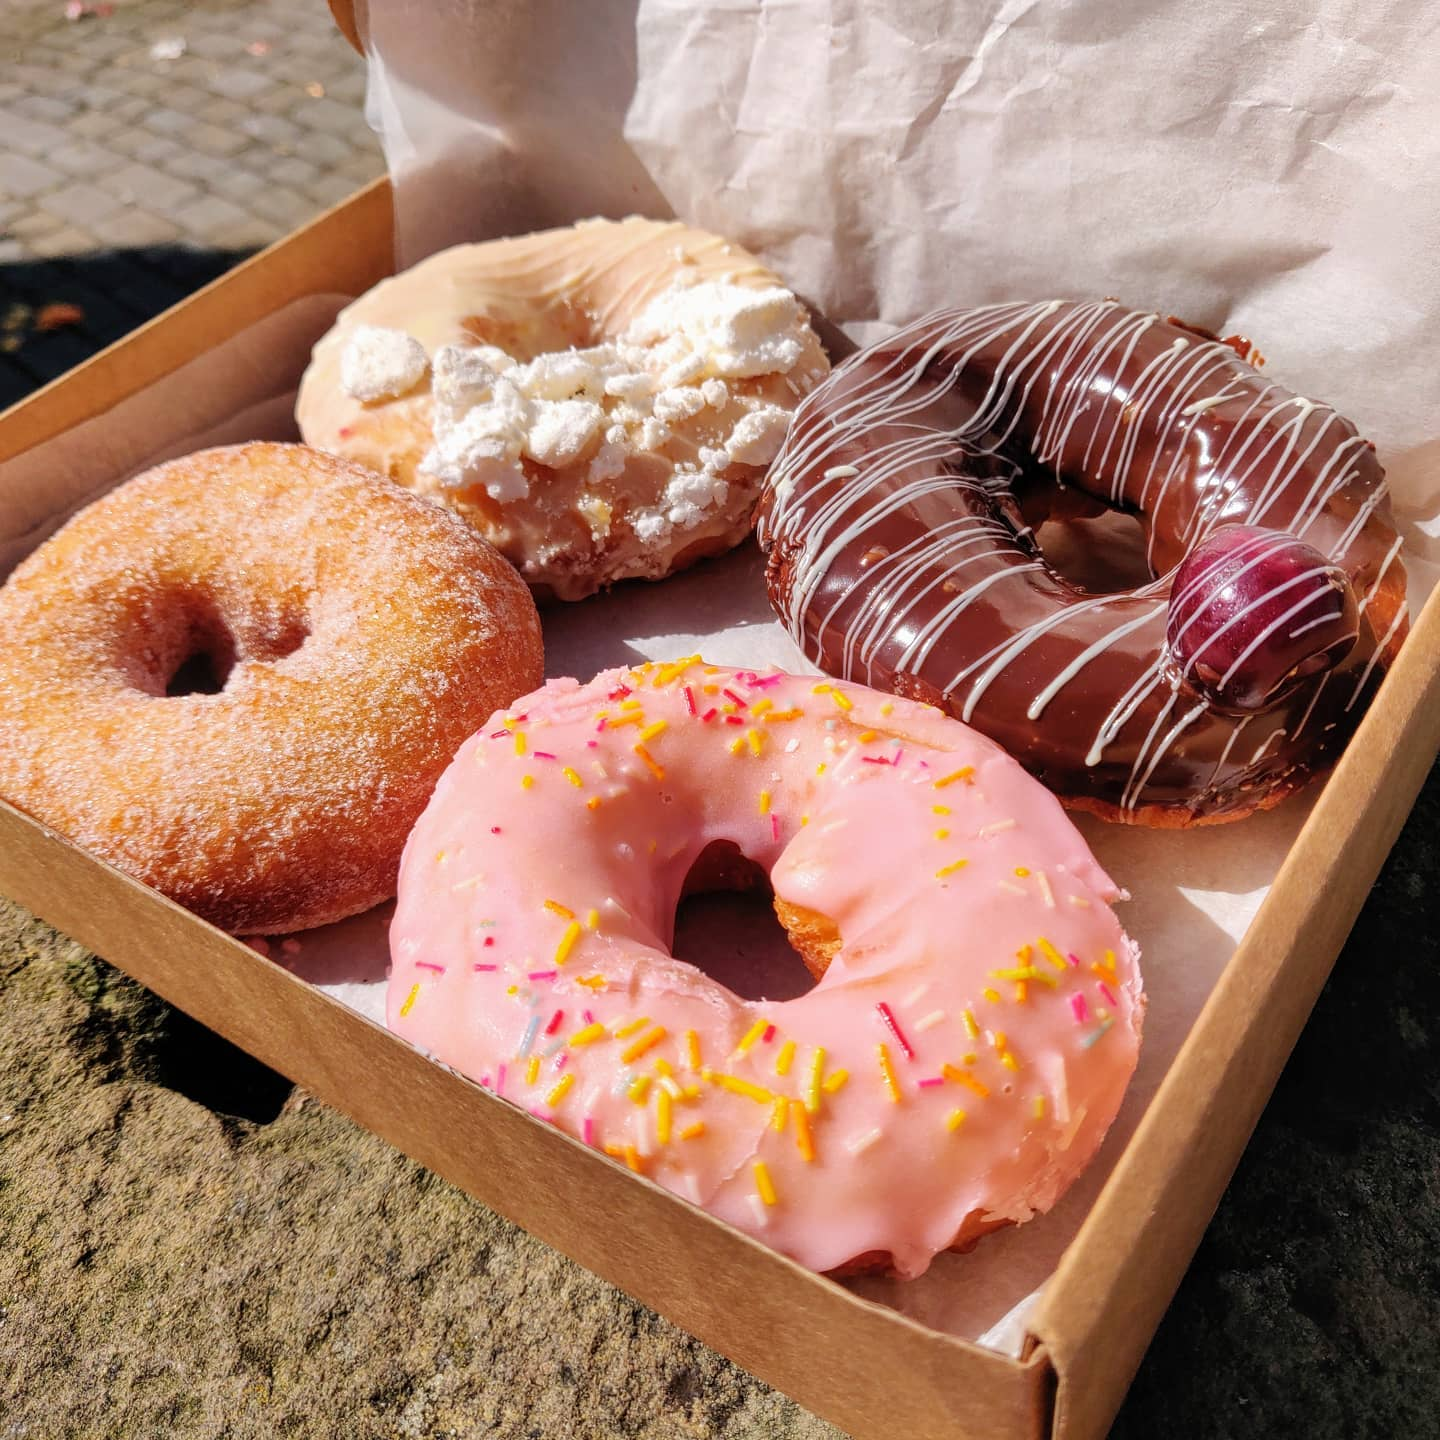 Doughnuts delivered by cargo bike